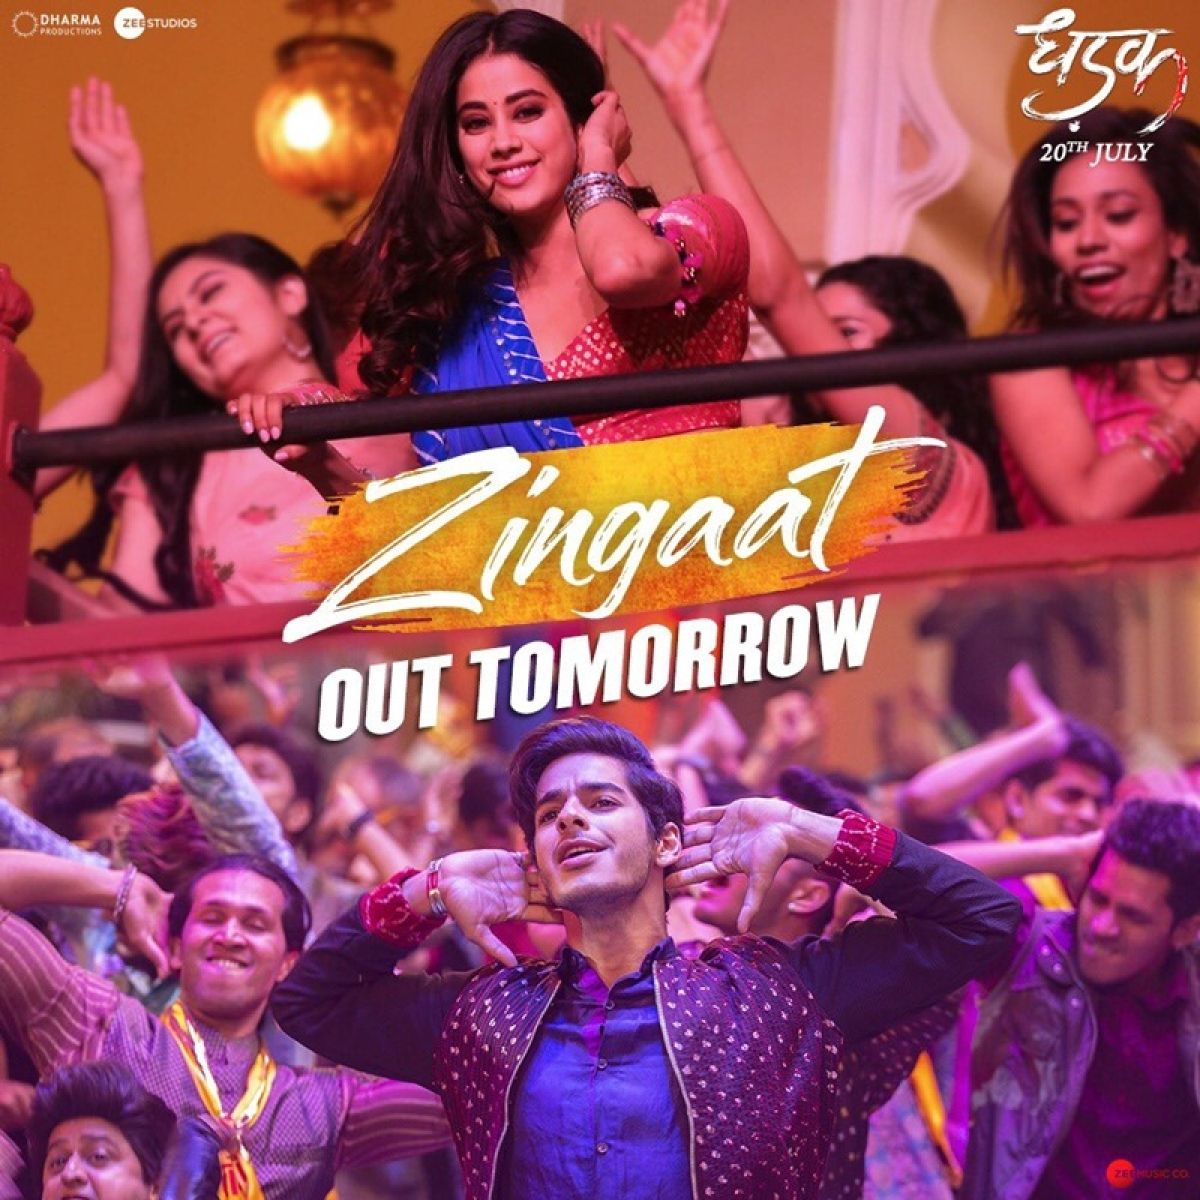 Dhadak: The Hindi version of famous 'Zingaat' song will be releasing tomorrow